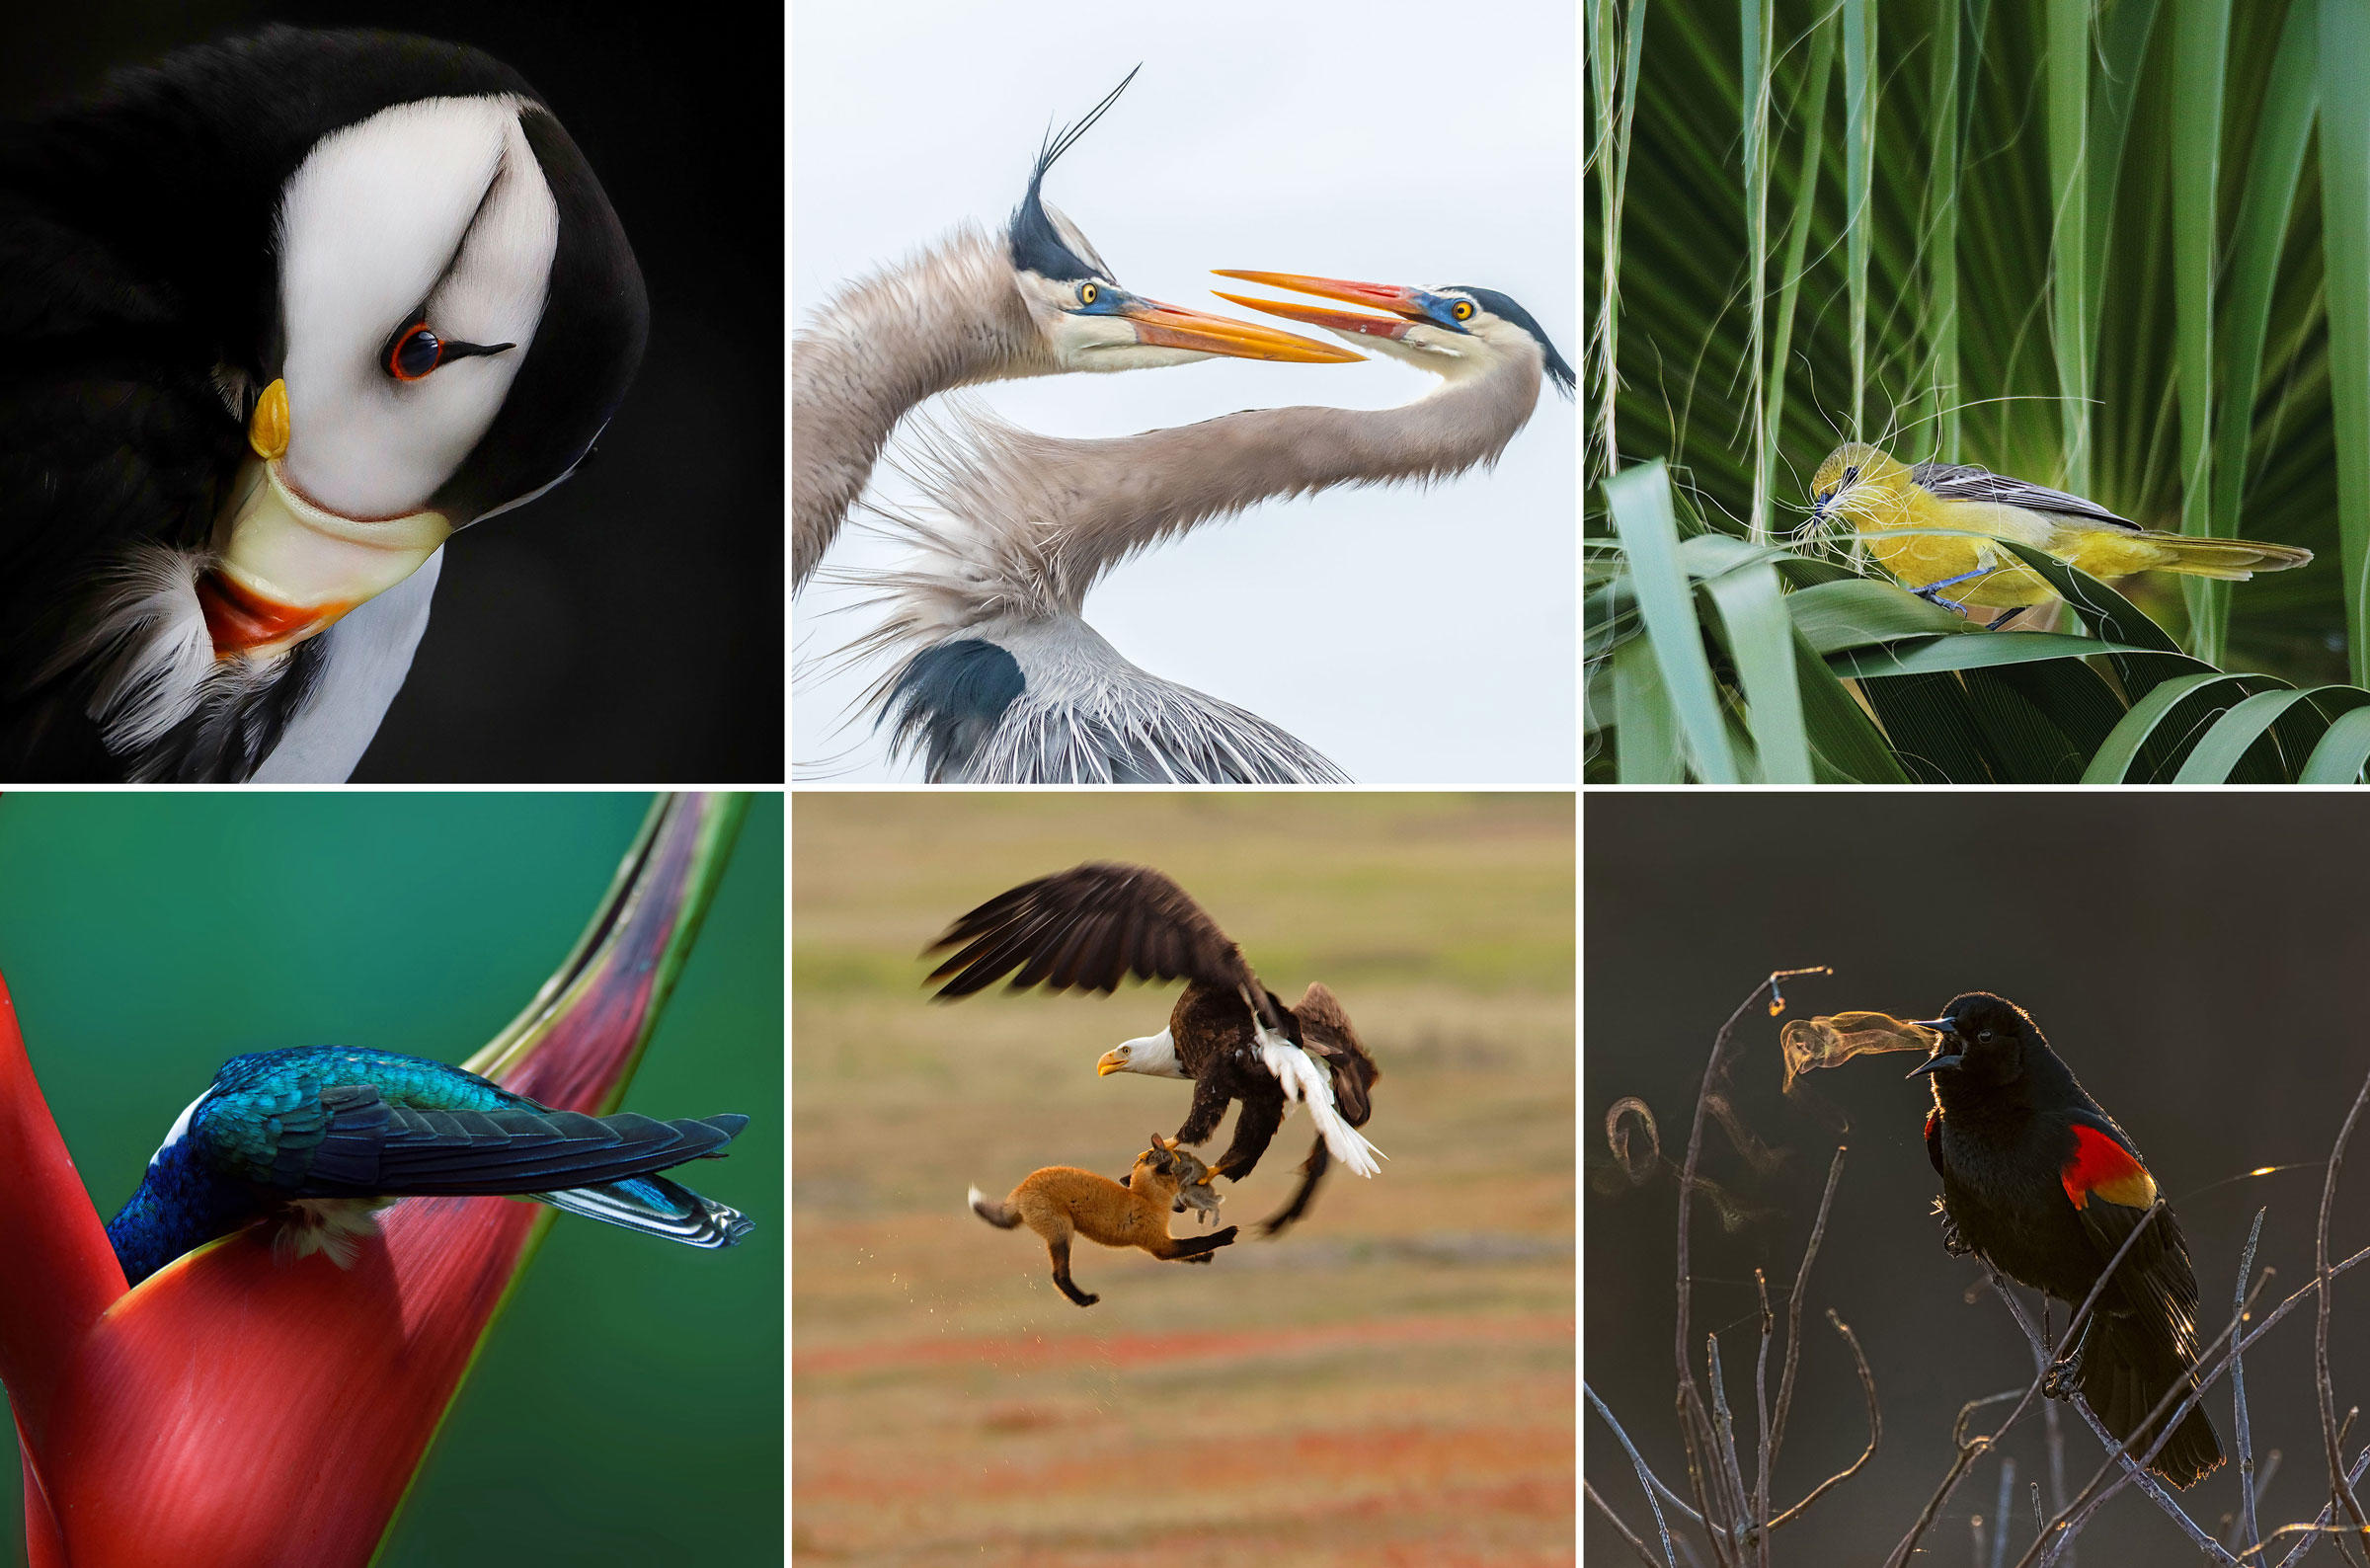 Slide Show Of Some Of My Bird Photos >> Slideshow The Winners Of The 2019 Audubon Photography